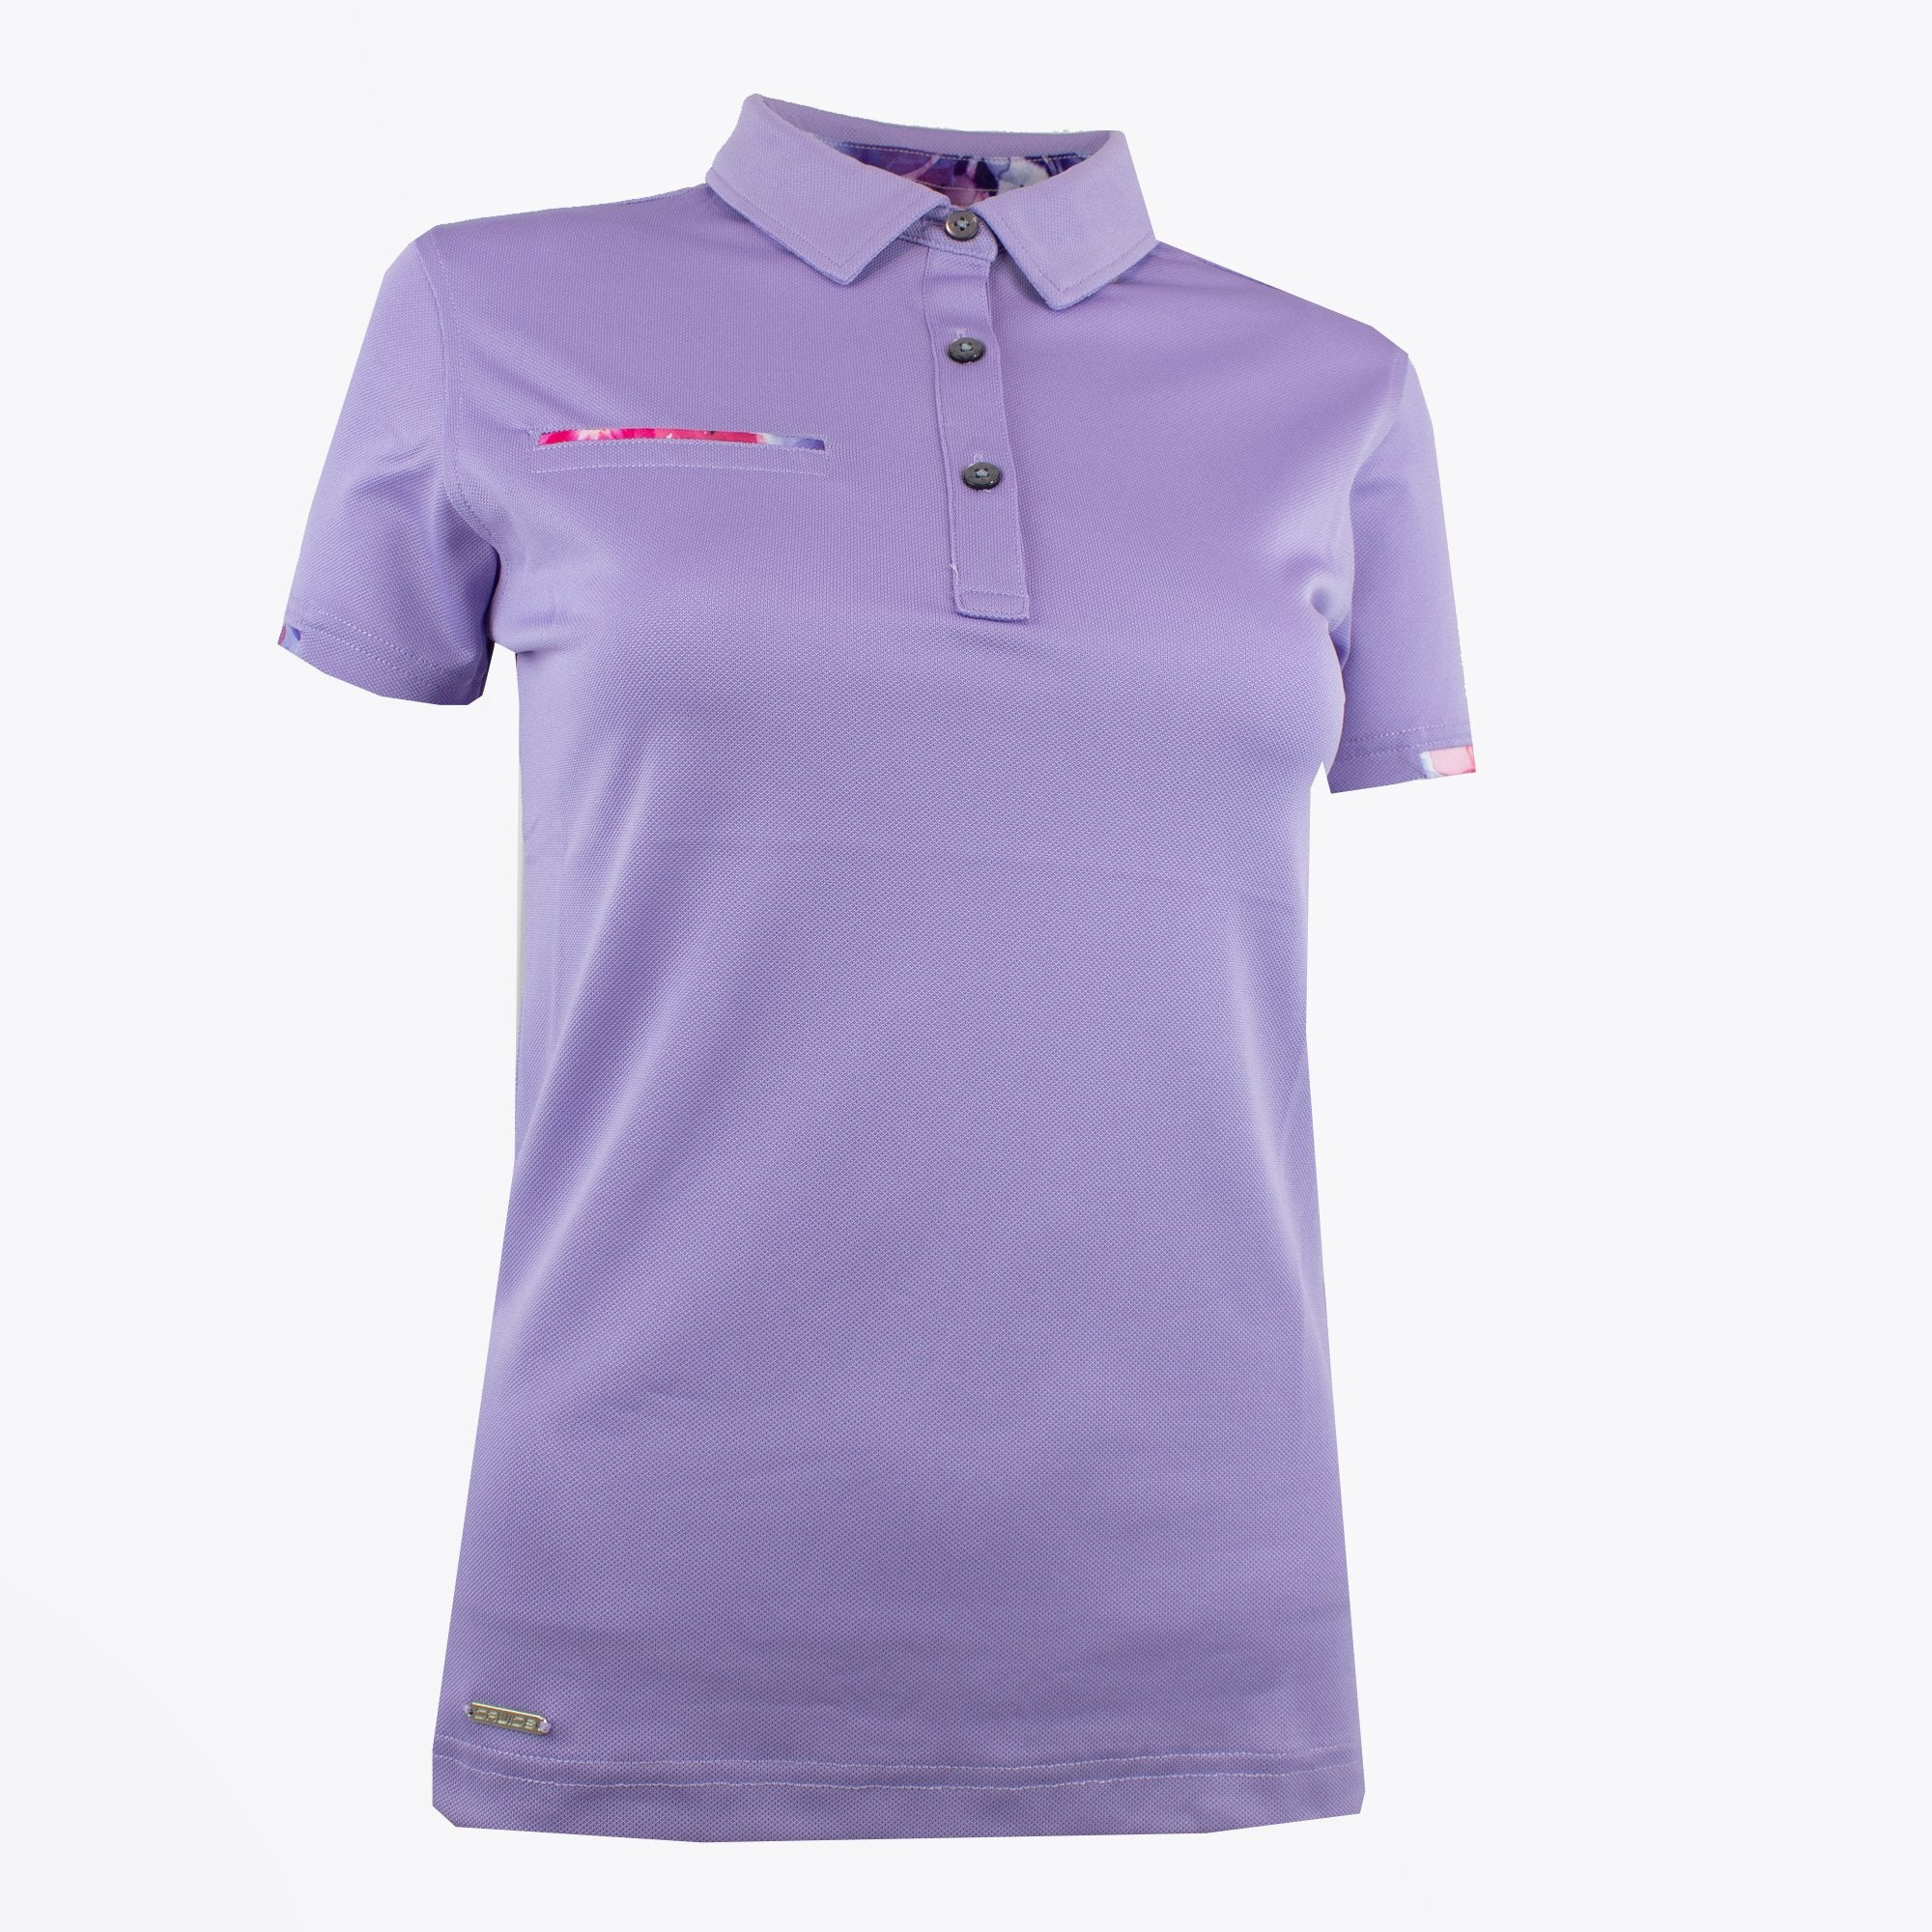 Druids Golf - Ladies Active Flo Trim Polo (Lilac)